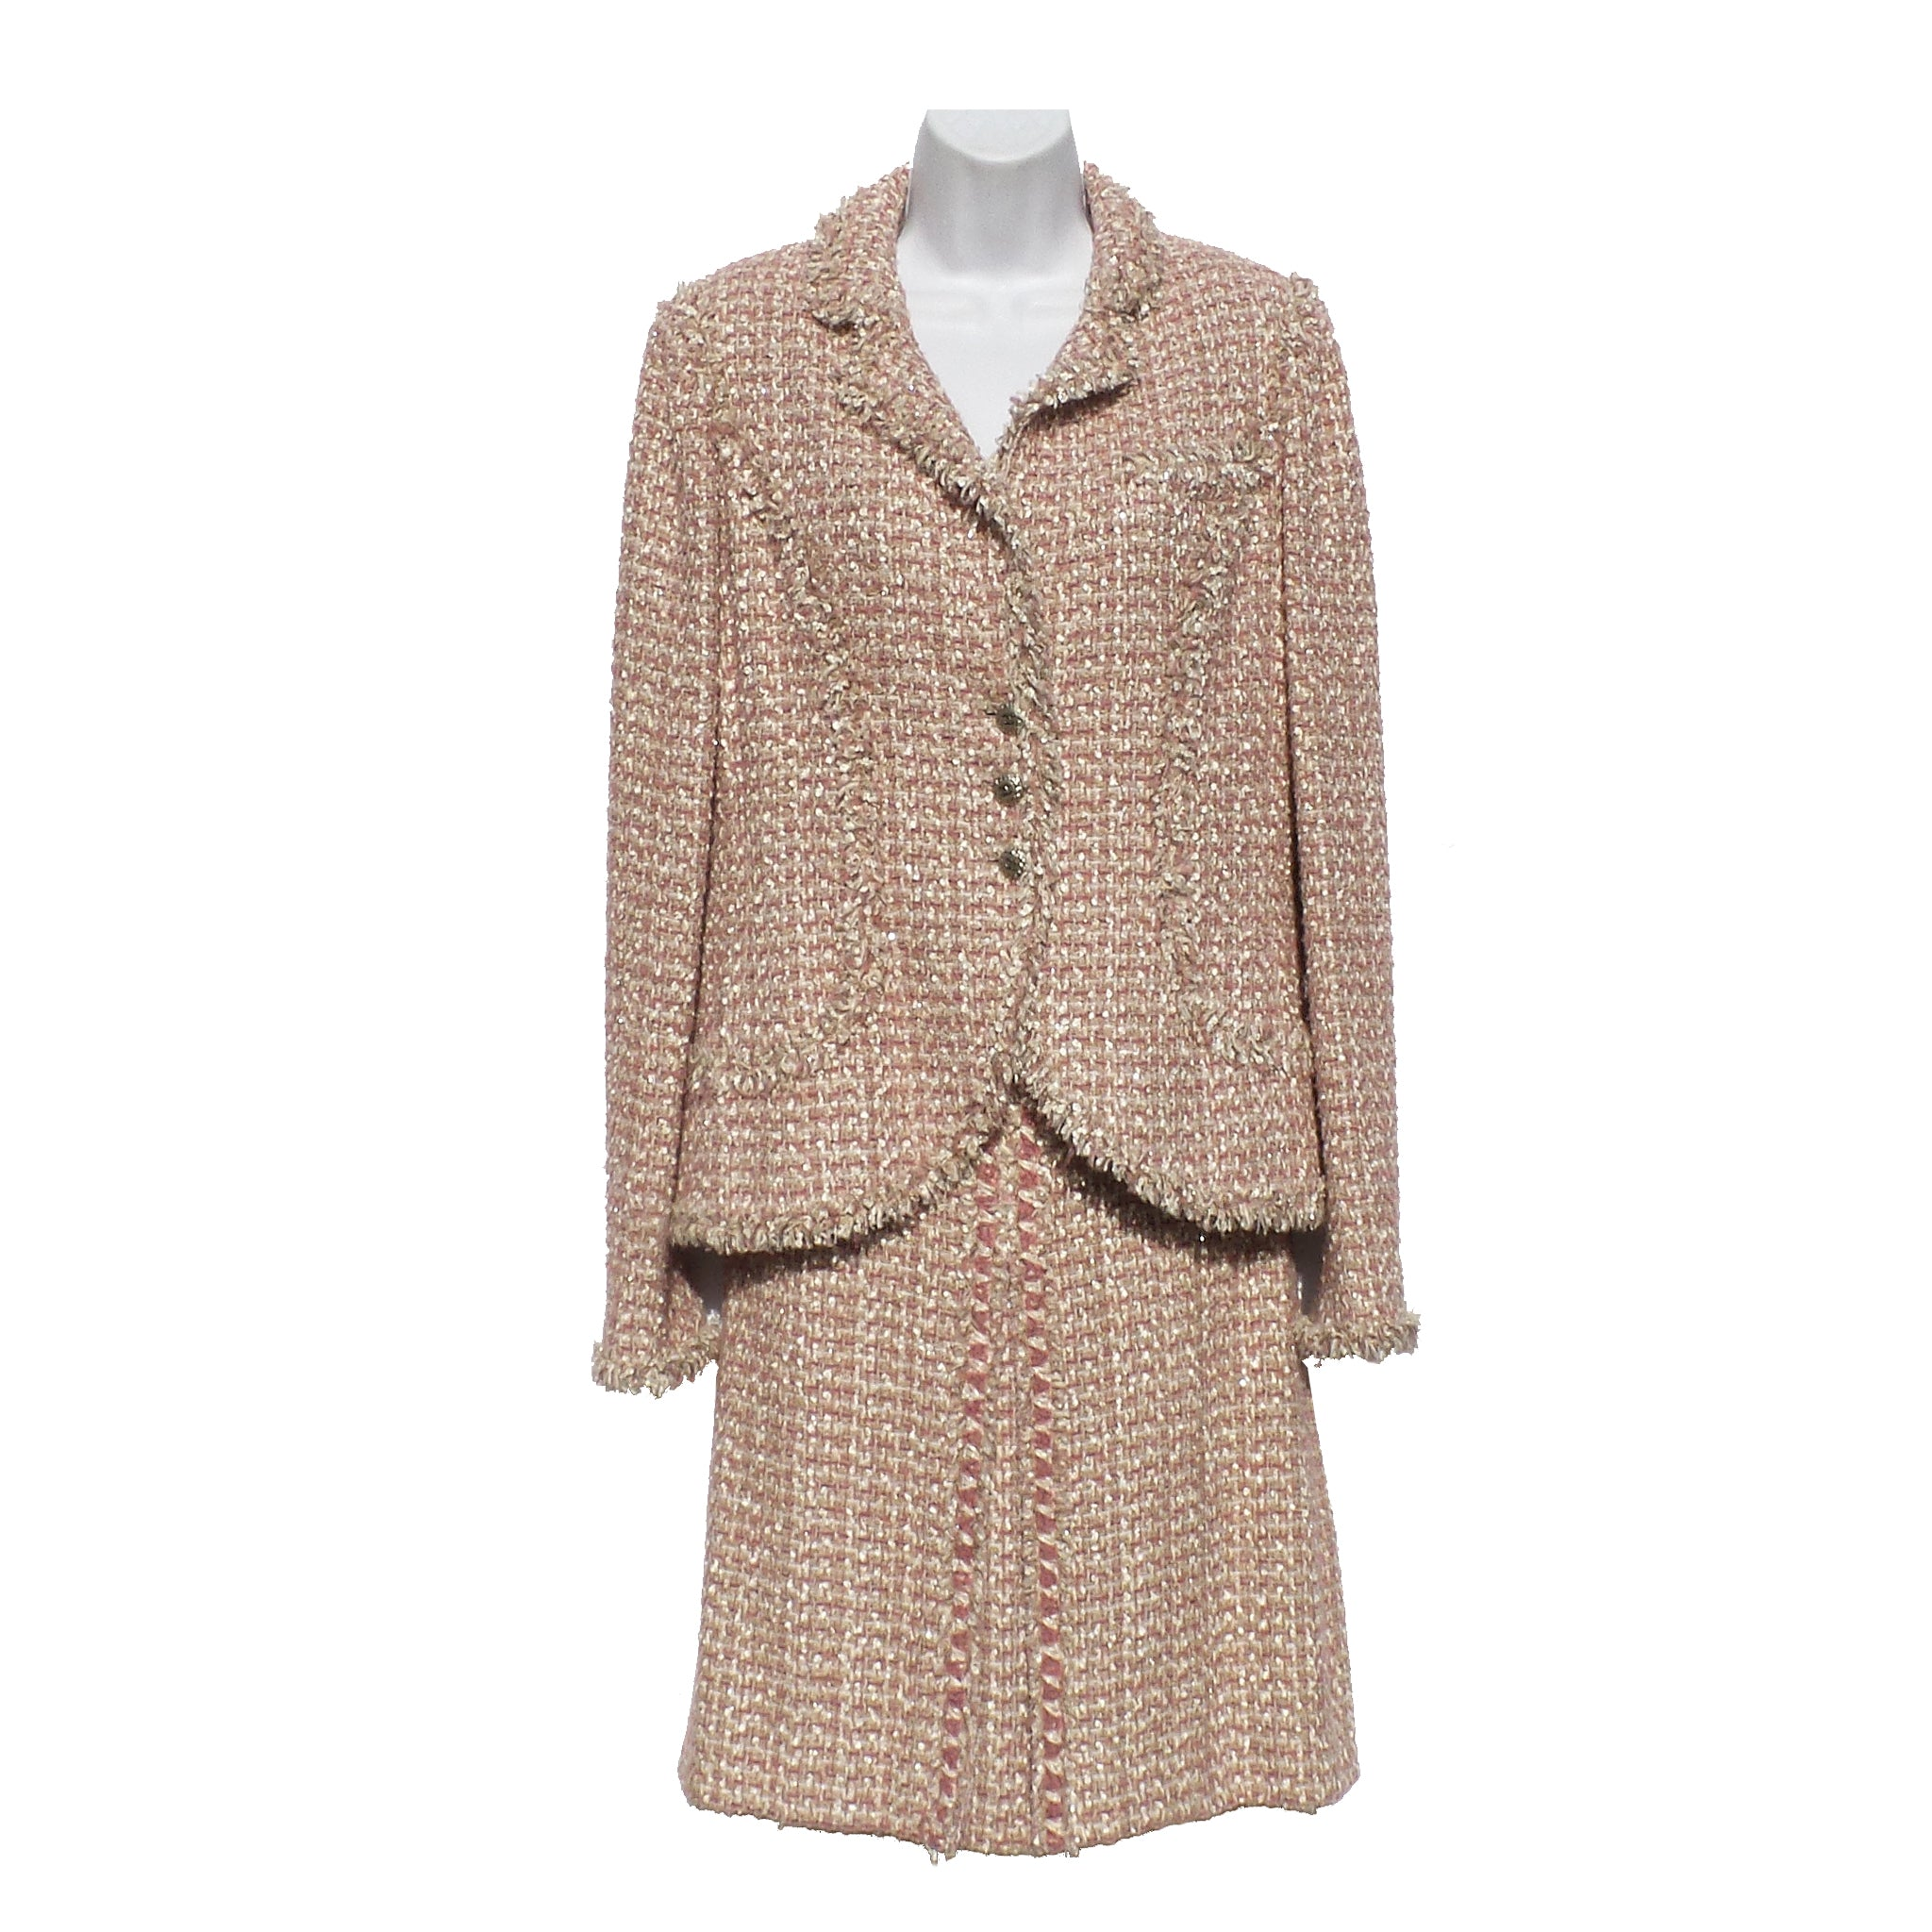 'Sold' CHANEL 06C Rose Pink Tan Beige Ivory Tweed Blazer Jacket 40 Pleat Skirt Suit 38